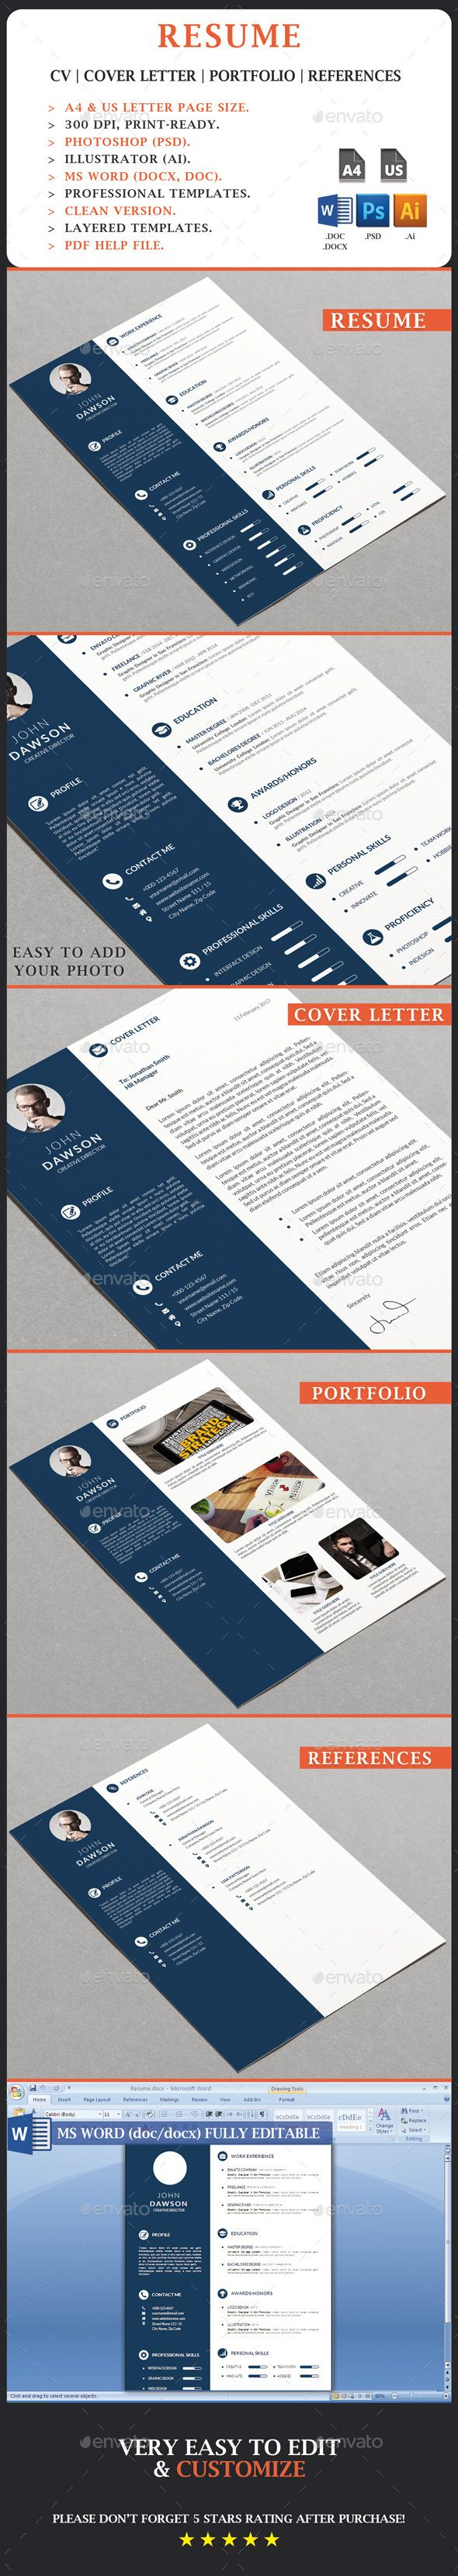 RESUME Clean minimal resume strong typographic structure and very easy to use and customize. Clean resume with cover letter is very well organized and labeled for you to get the best result in the minimum possible time to make your resume cv tailor for any opportunity. THE PACKAGE INCLUDES: Resume/CV Cover Letter Portfolio References FEATURES: A4 and US Letter Page Size. Fully Customizable and Editable. CMYK @ 300 DPI – Print Ready. MS Word 1997 – 2003 – 2007 or Higher Included. Free font…